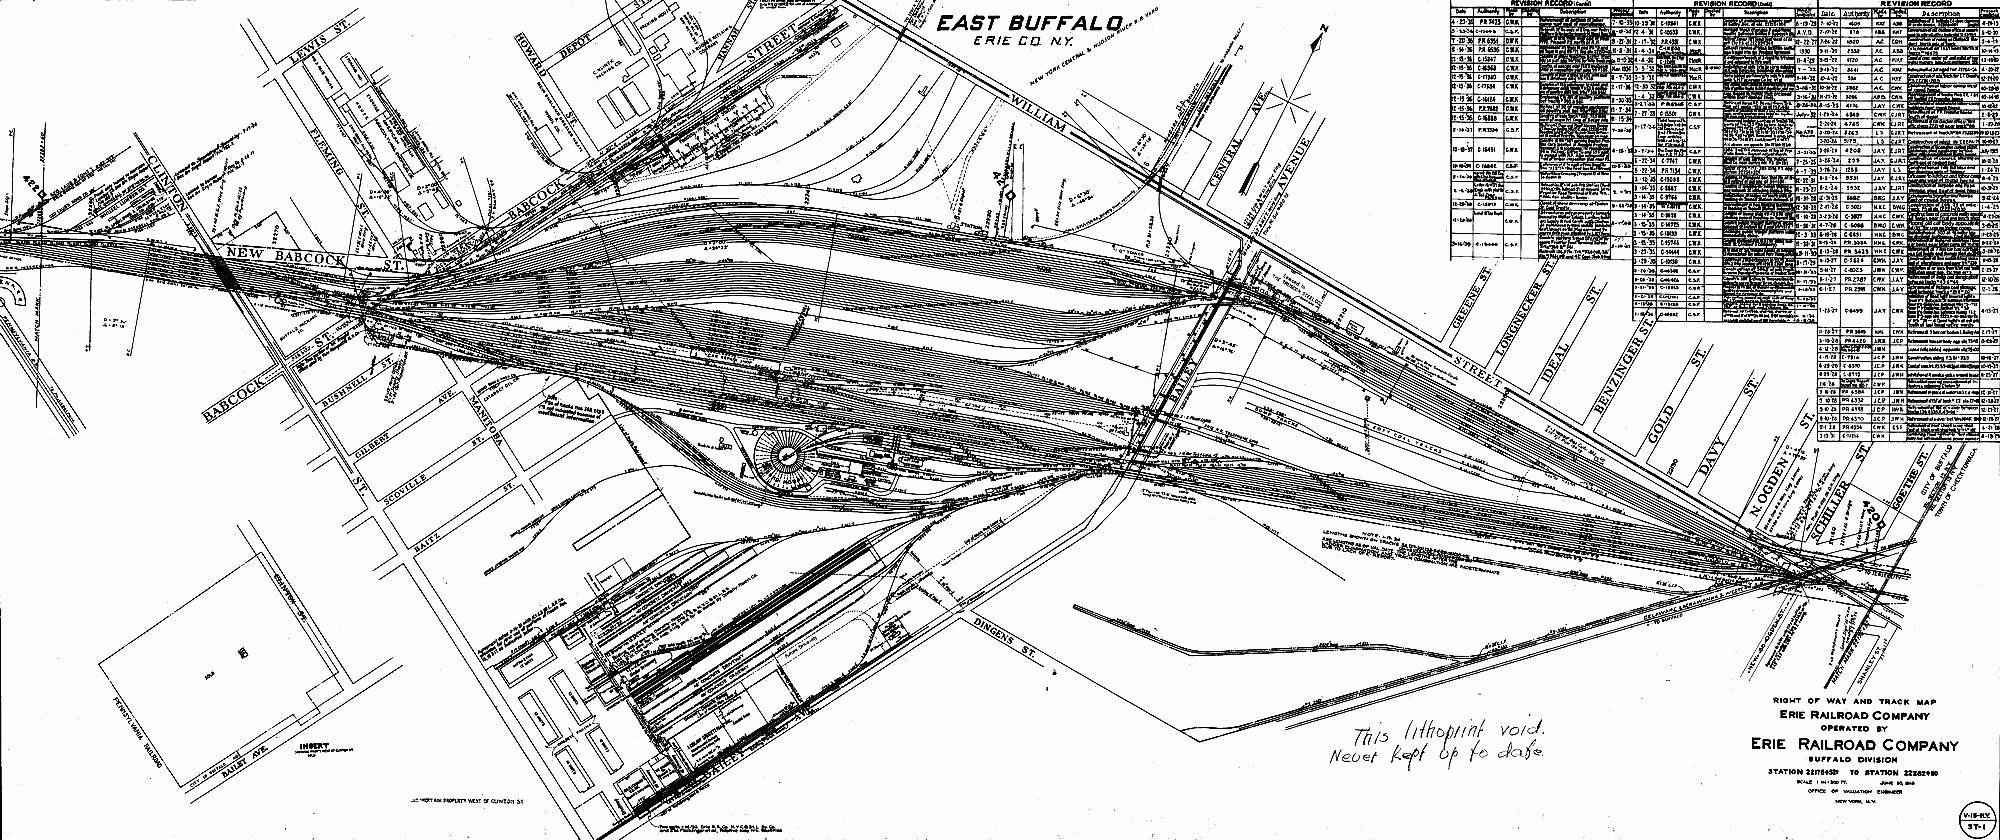 Erierailroad Land Valuation Map Samples